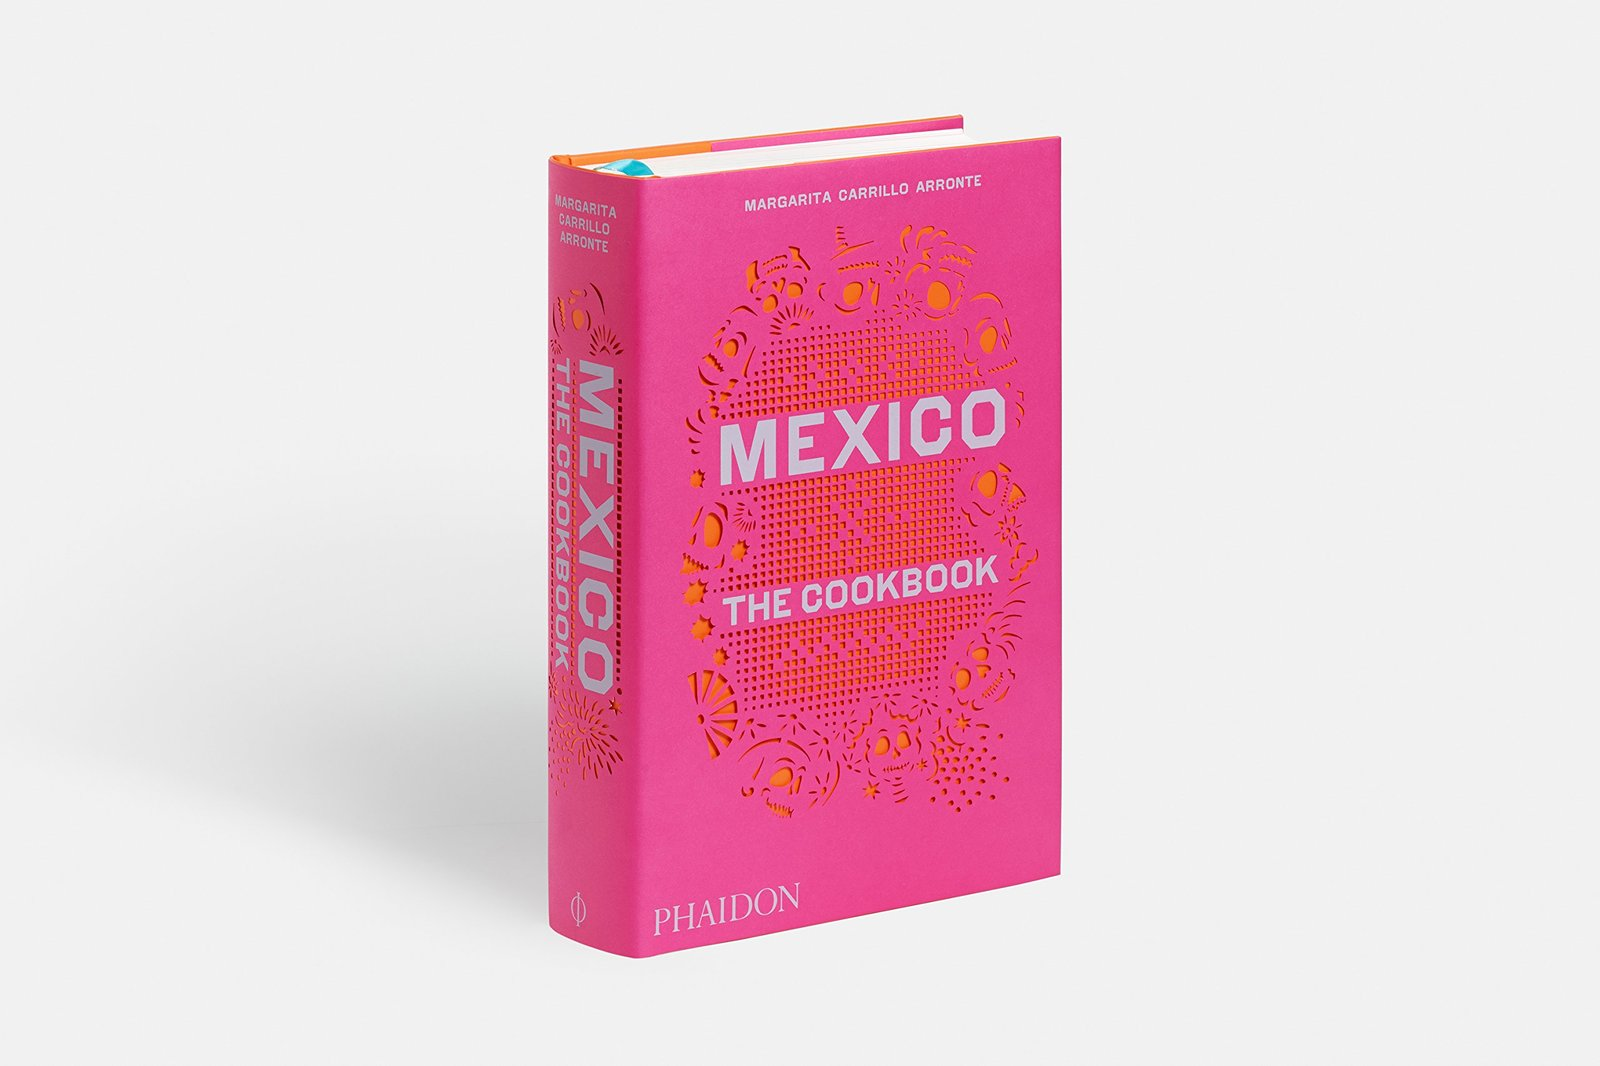 Mexico by Margarita Carrillo Arronte image